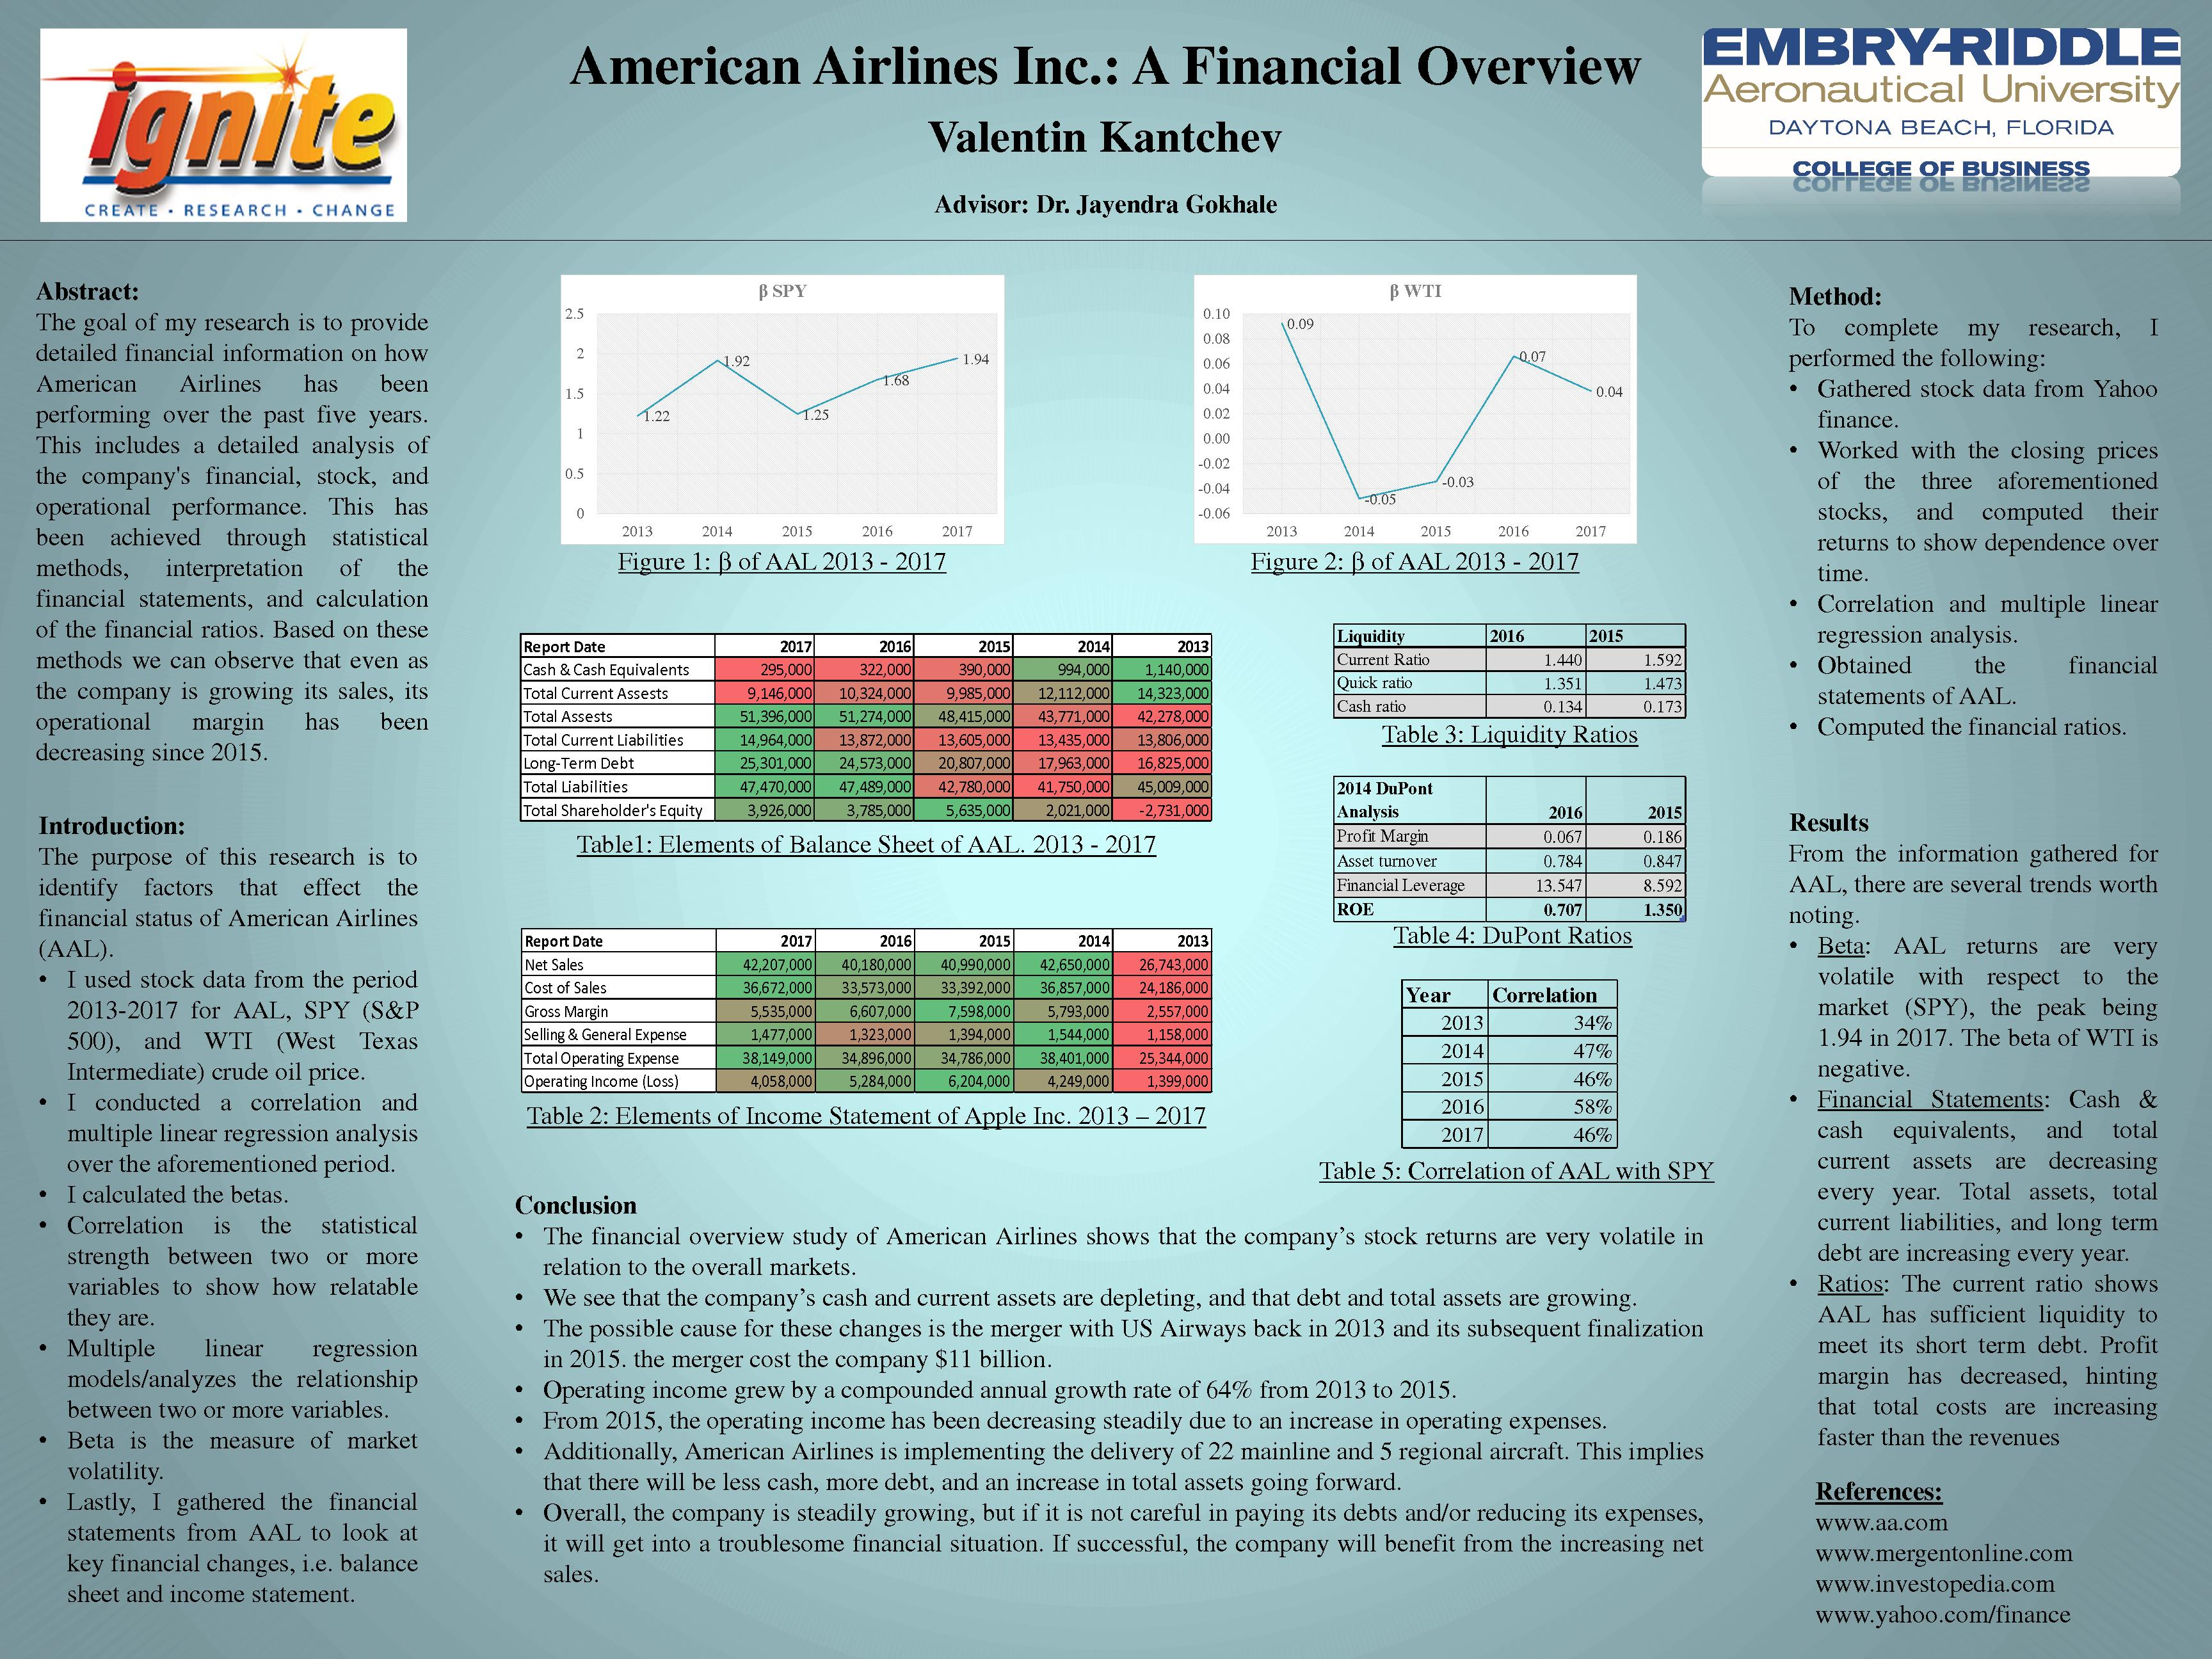 identify factors that effect the financial status of American Airlines